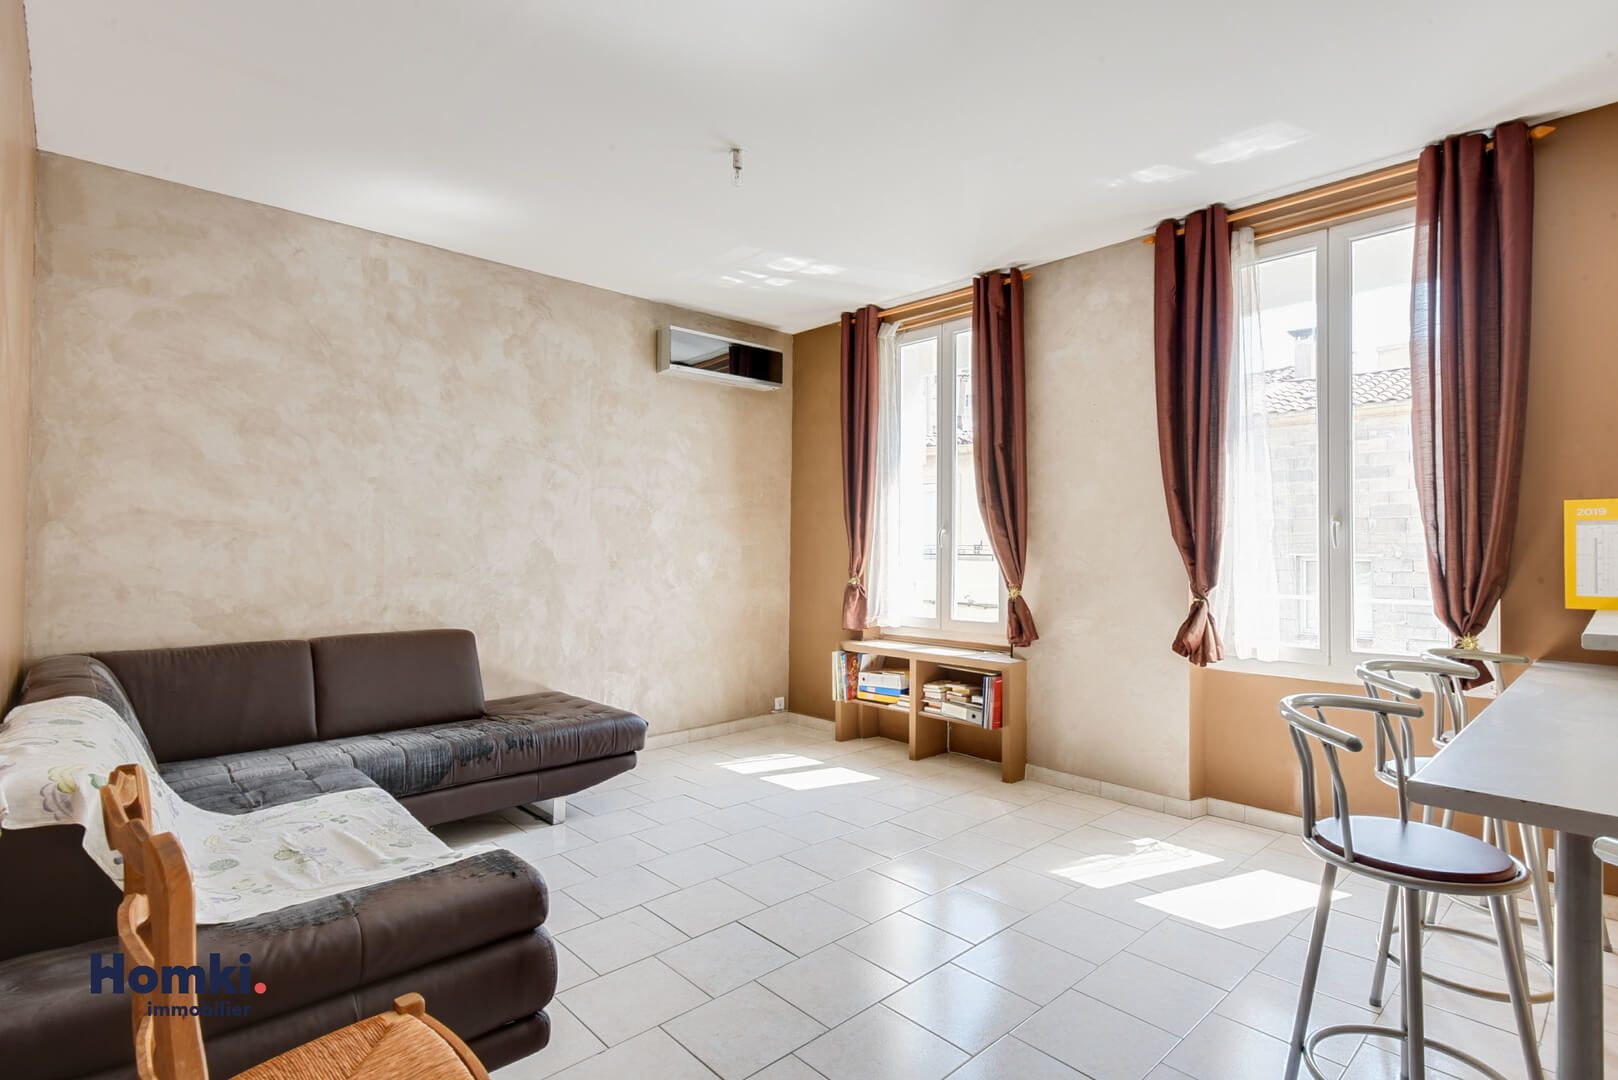 Vente Appartement 76 m² T4 13005 Marseille_4